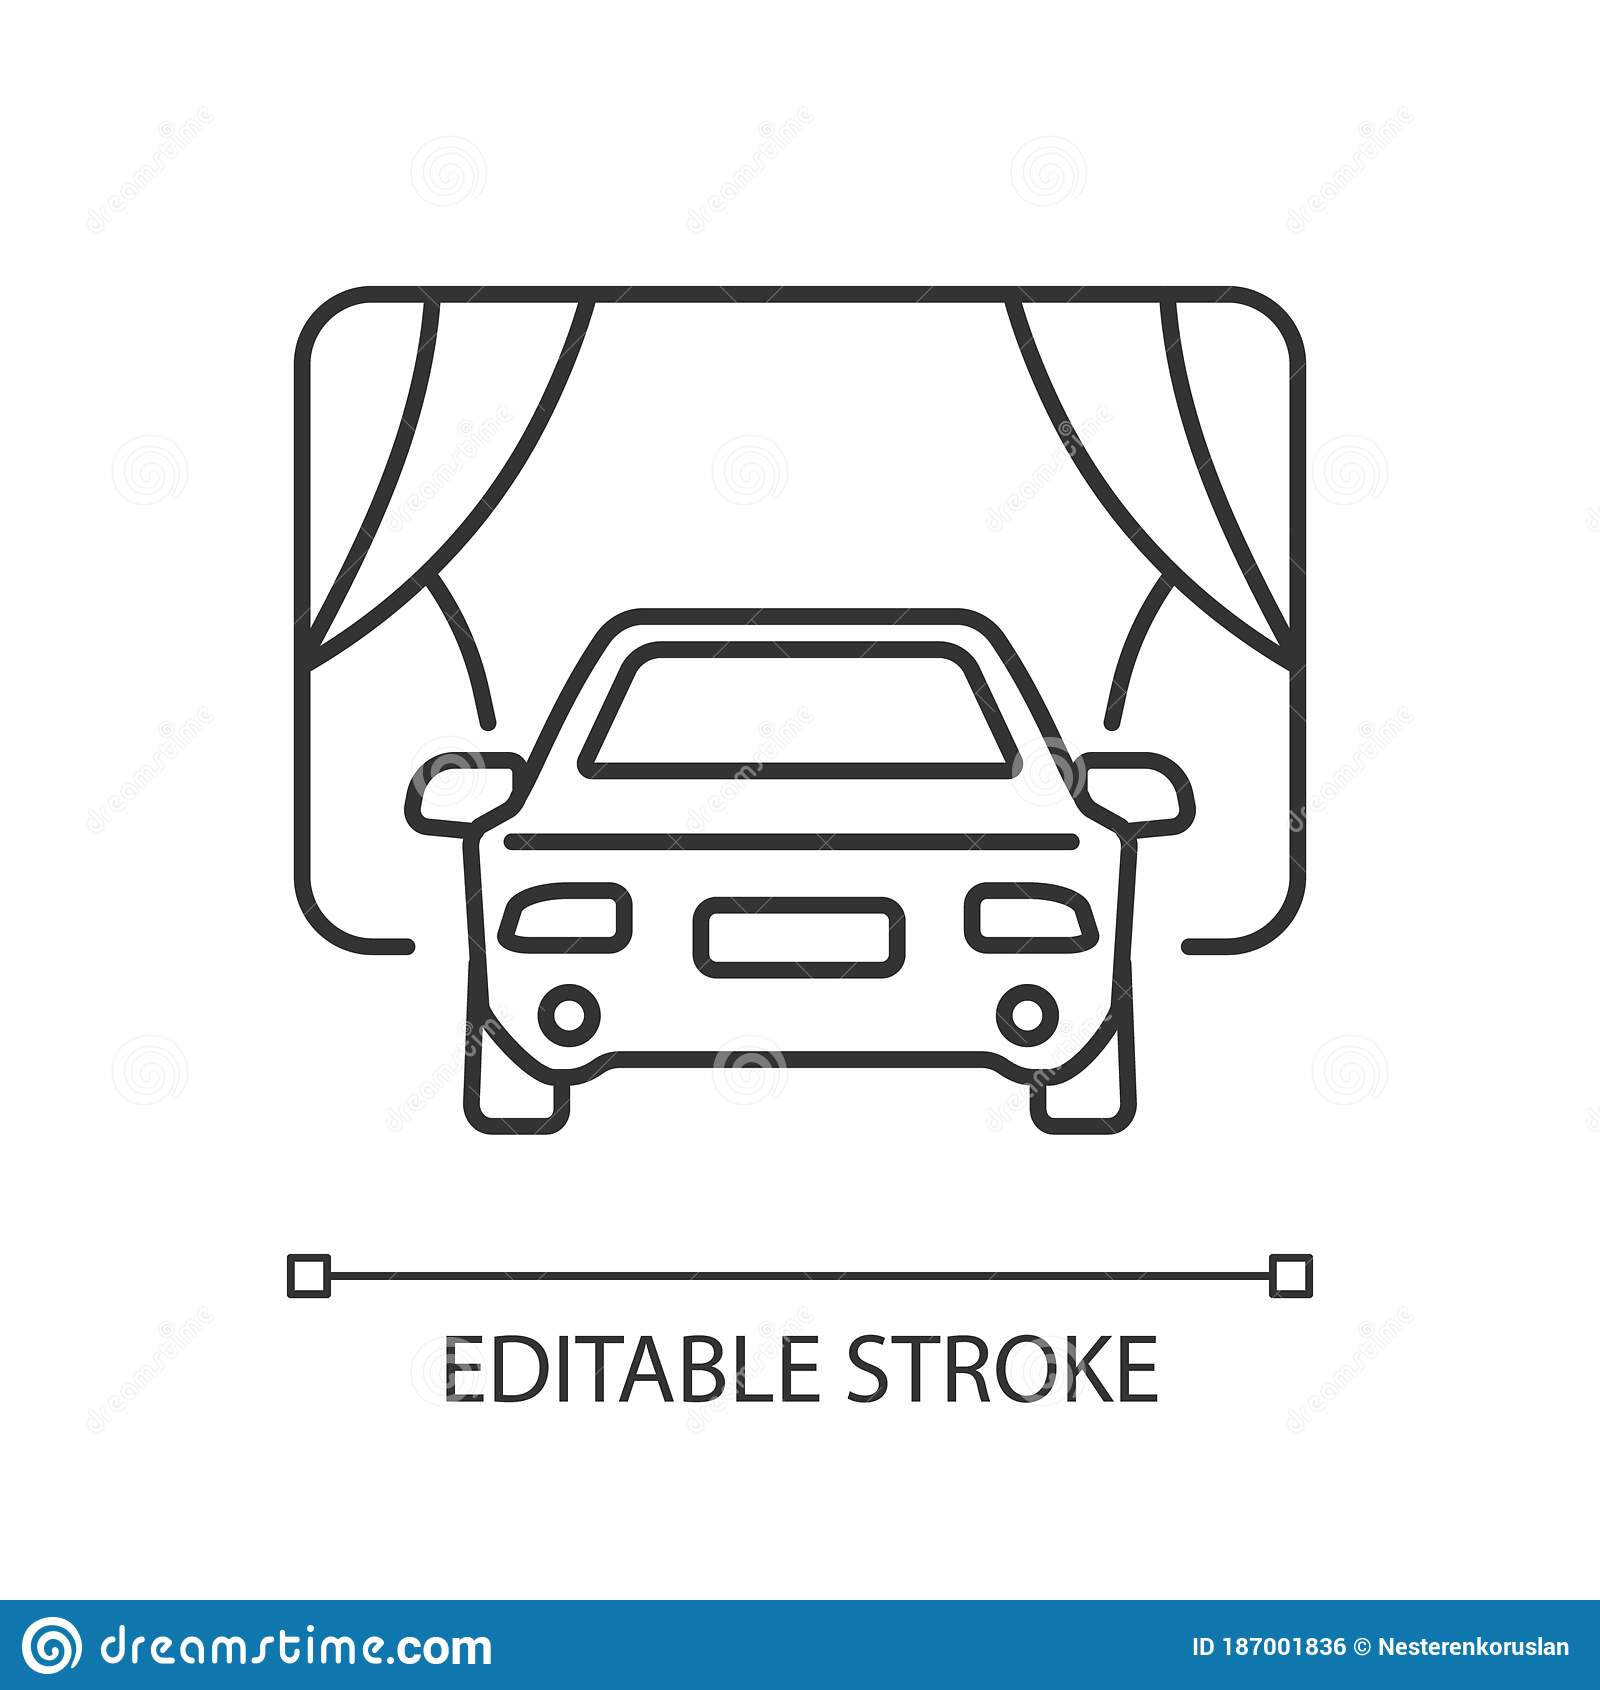 Drive In Movie Theater Pixel Perfect Linear Icon Stock Vector Illustration Of Outdoor Drive 187001836